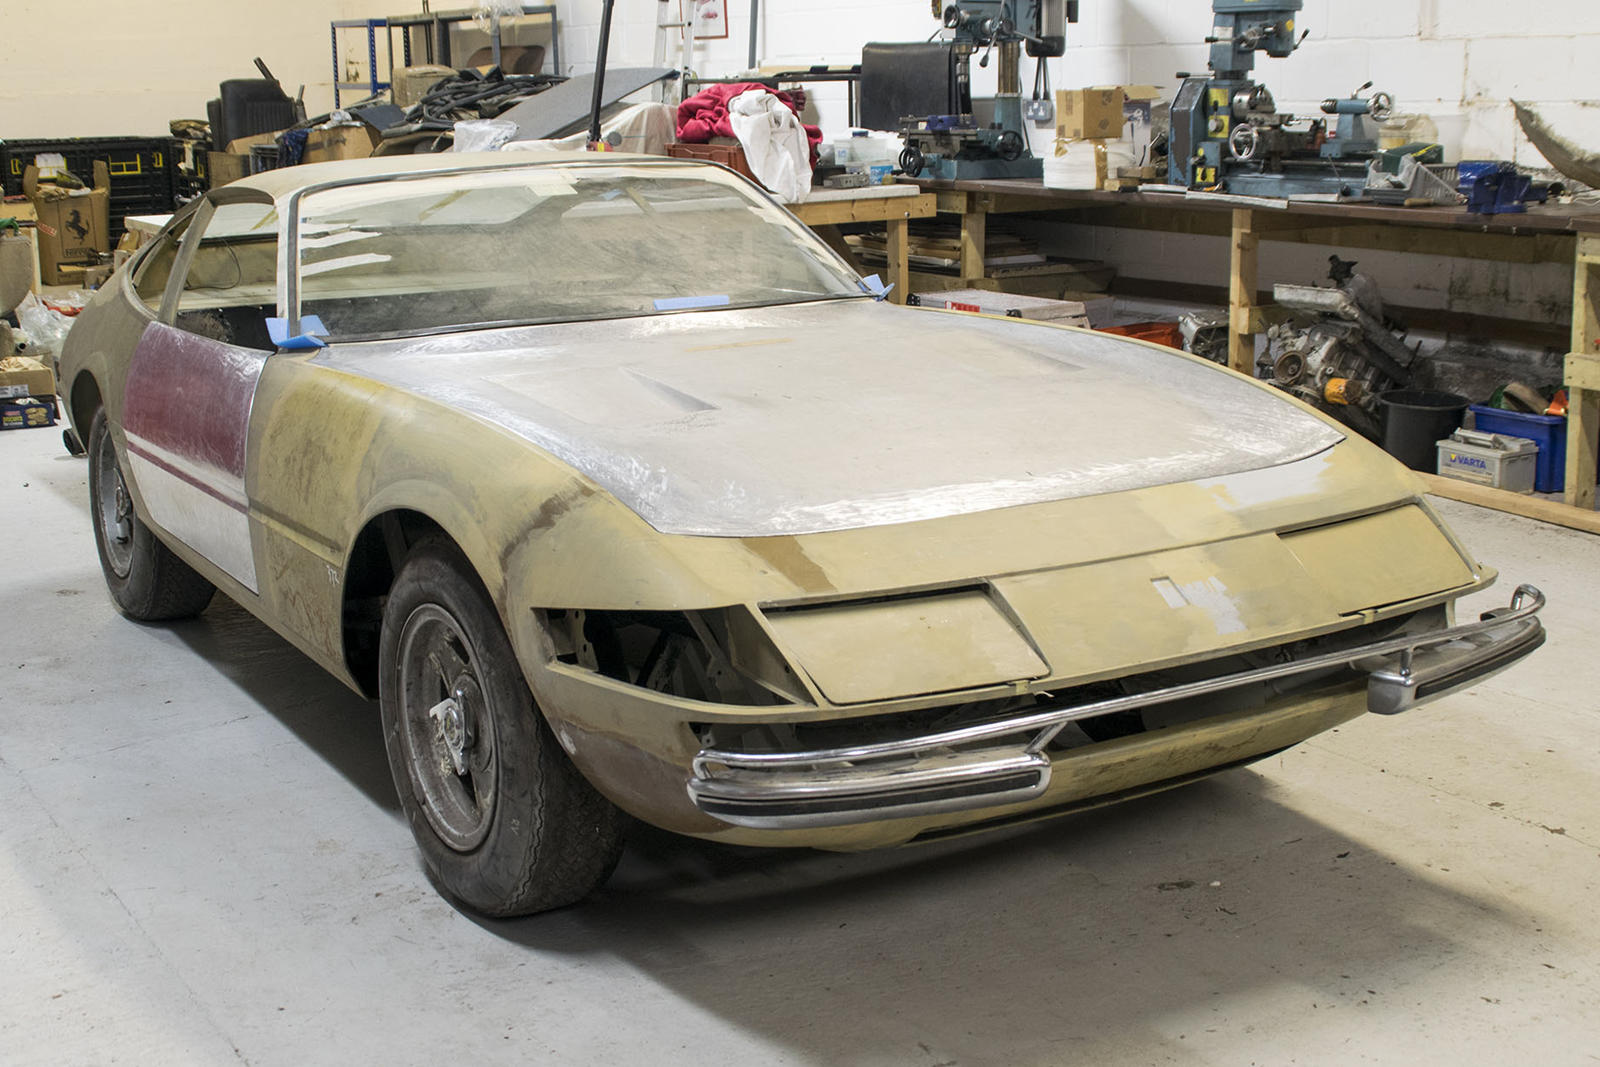 Restoring This Classic Ferrari Daytona Would Be Our Dream Project